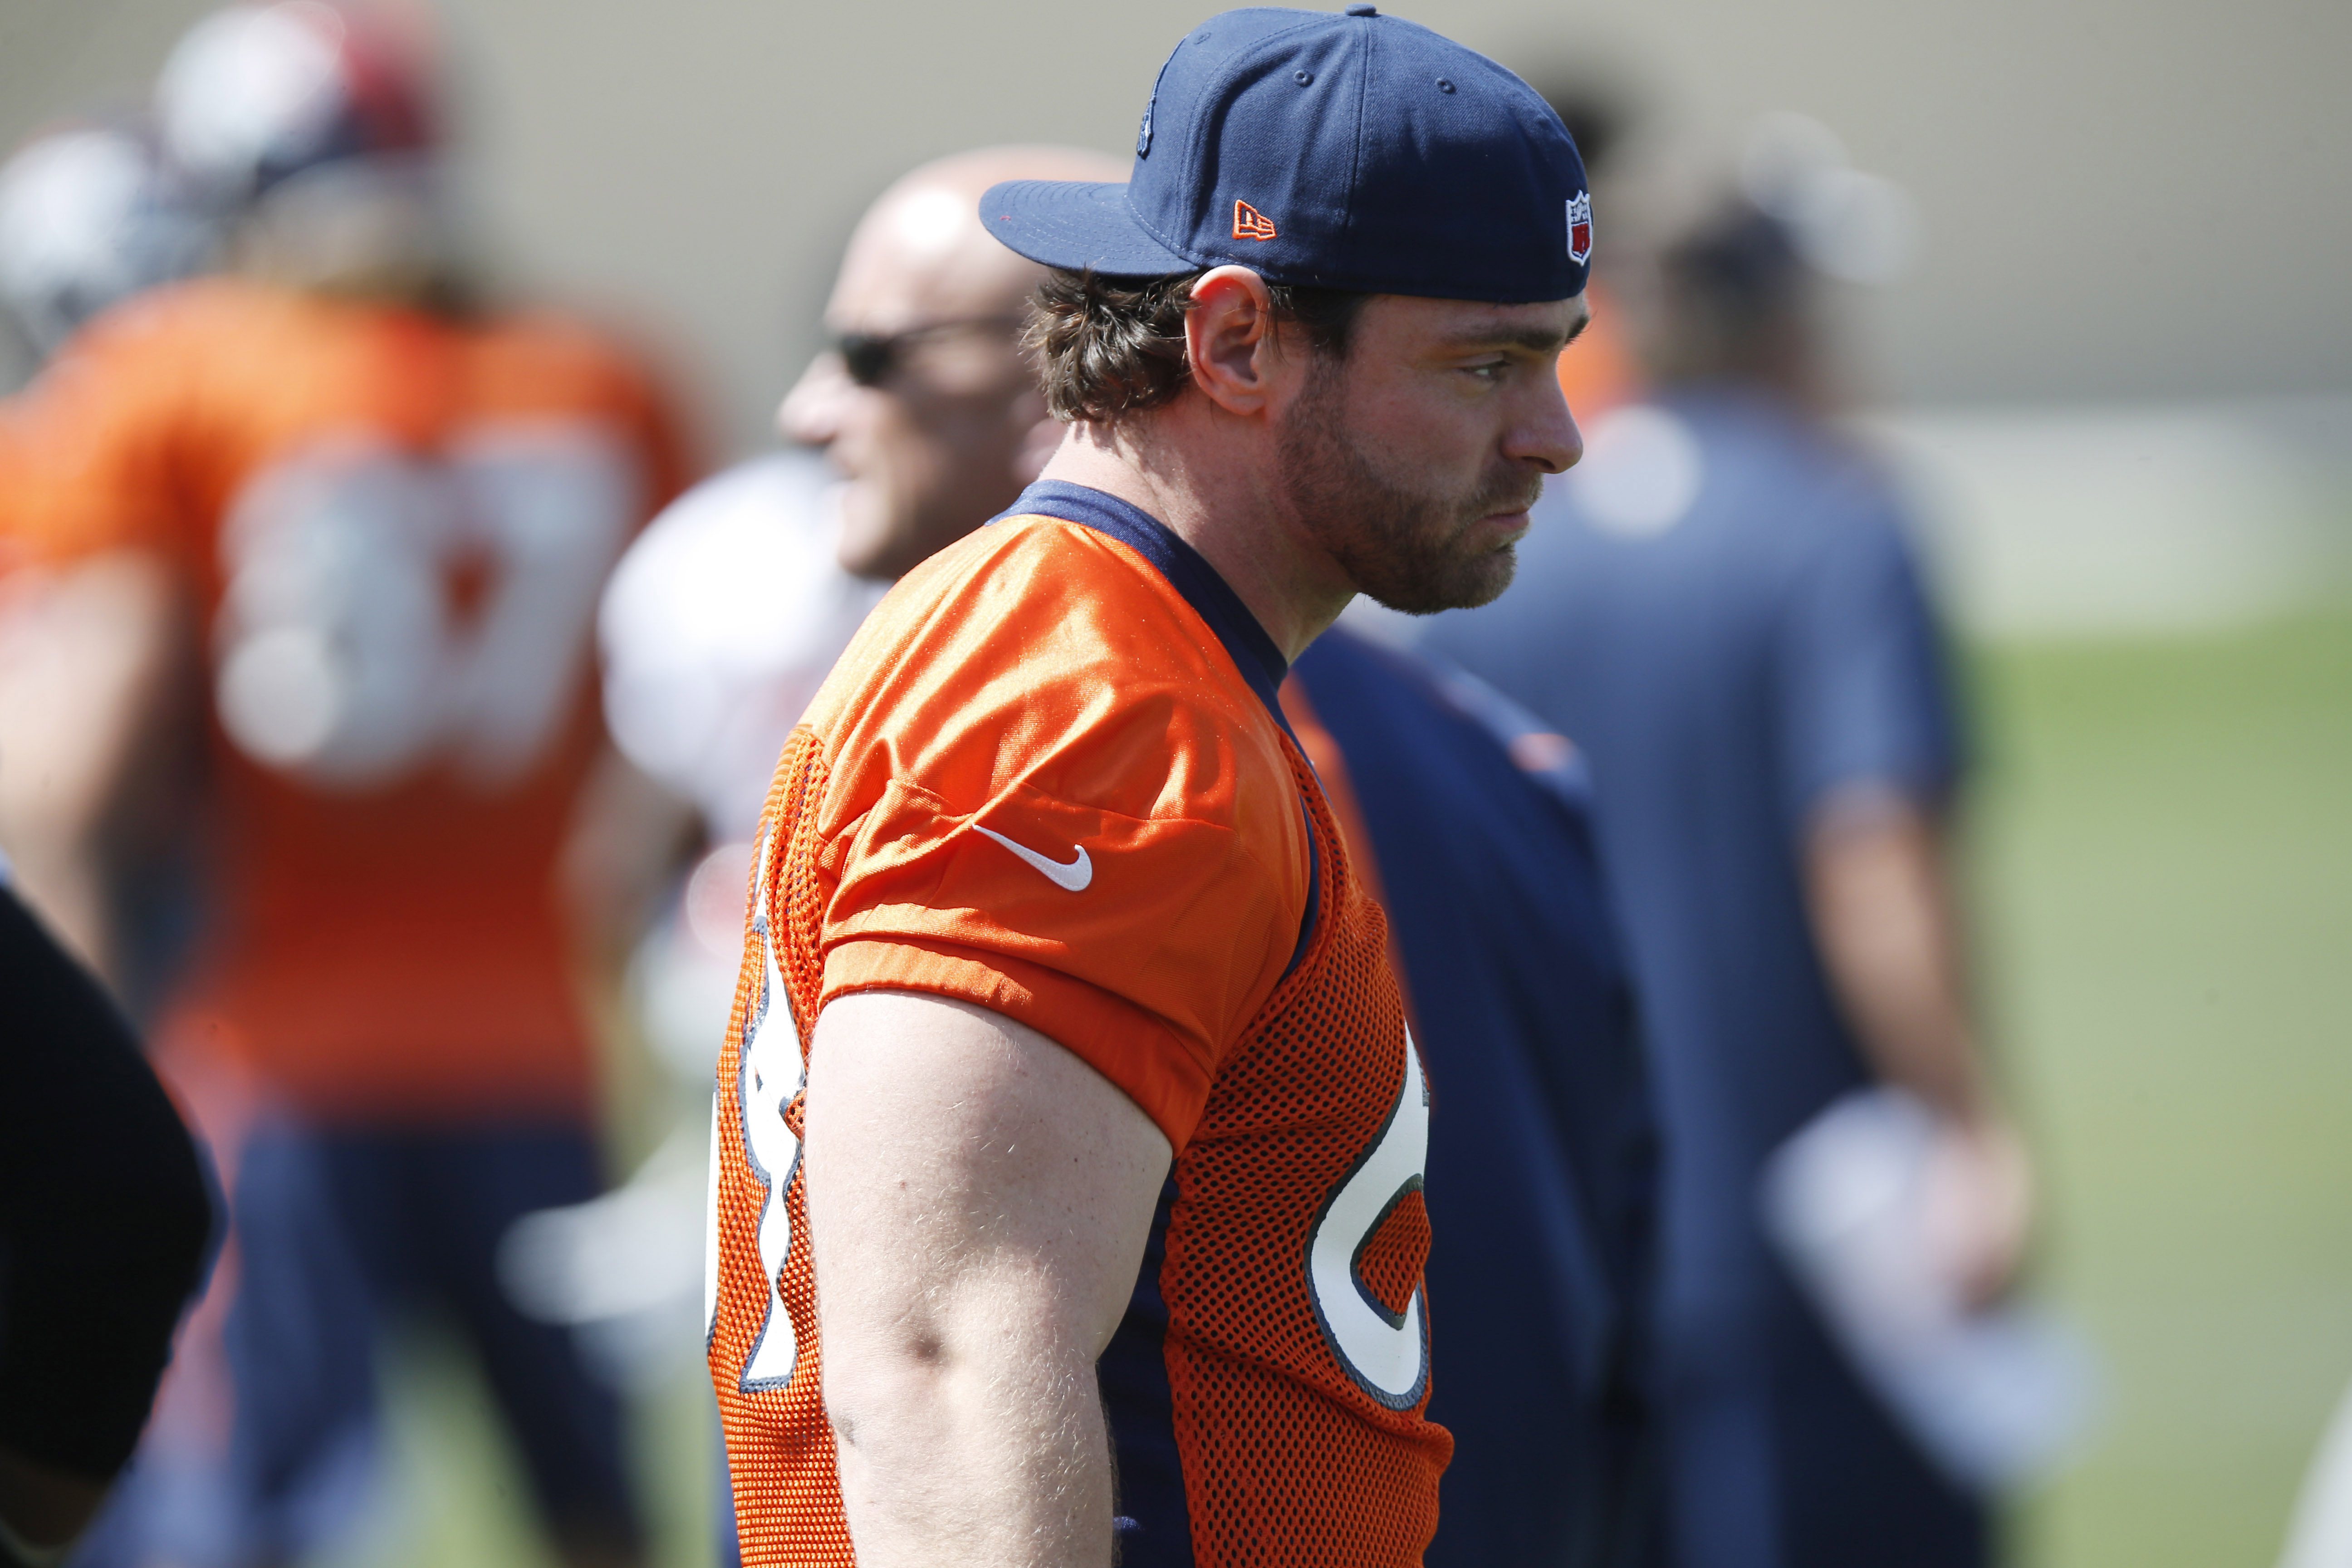 Denver Broncos offensive lineman Evan Mathis looks on during an NFL football scrimmage against the San Francisco 49ers at the Broncos' headquarters Wednesday, Aug. 26, 2015, in Englewood, Colo. (AP Photo/David Zalubowski)